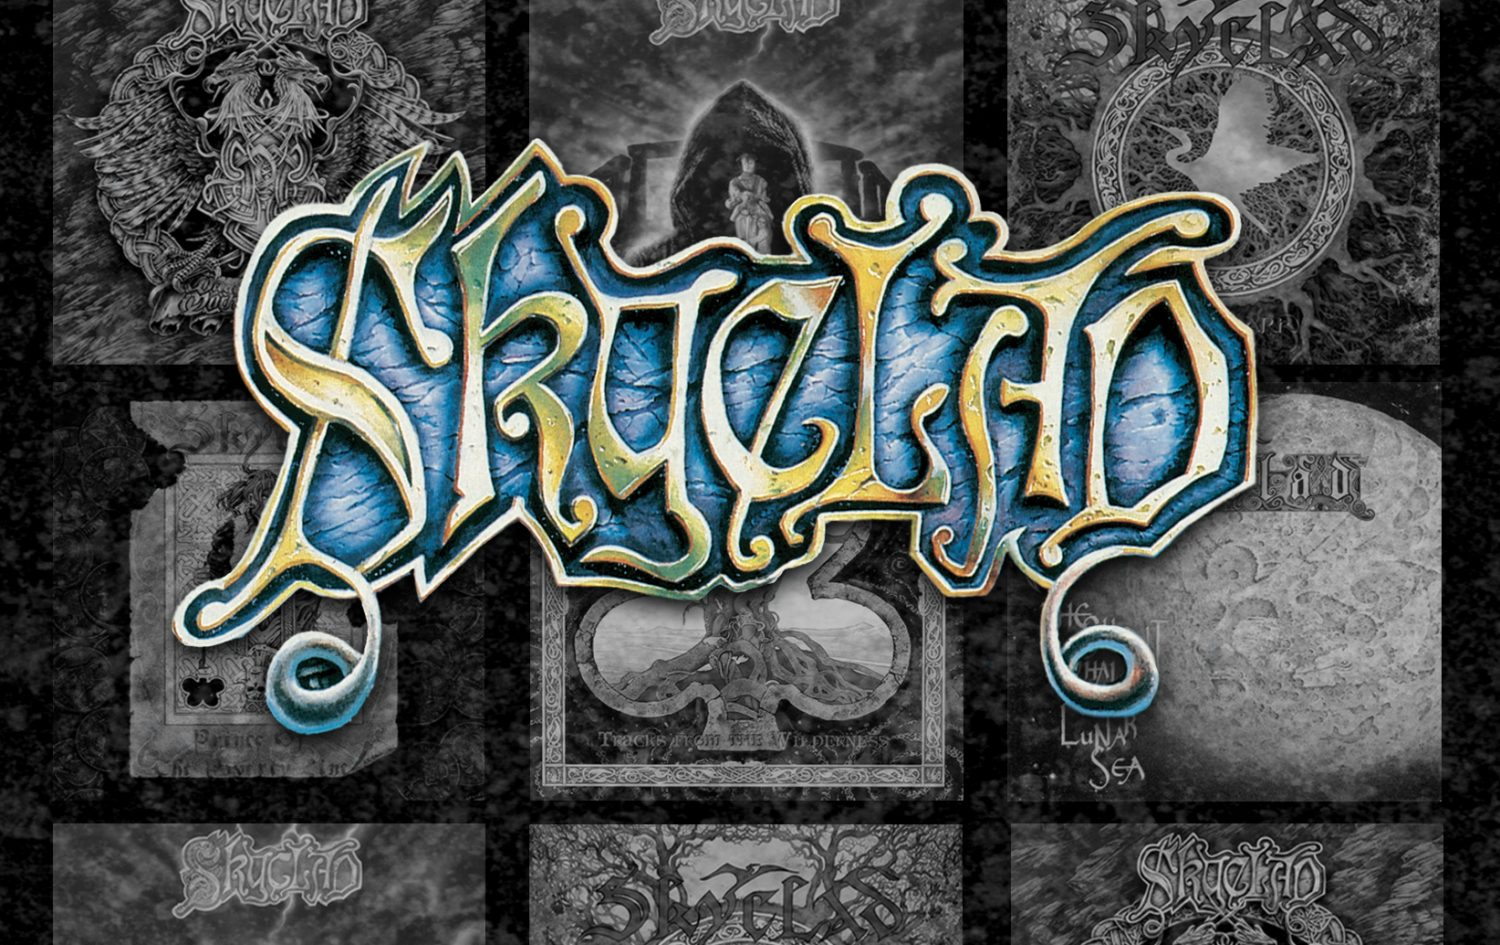 Skyclad A Bellyful Of Emptiness Packshot